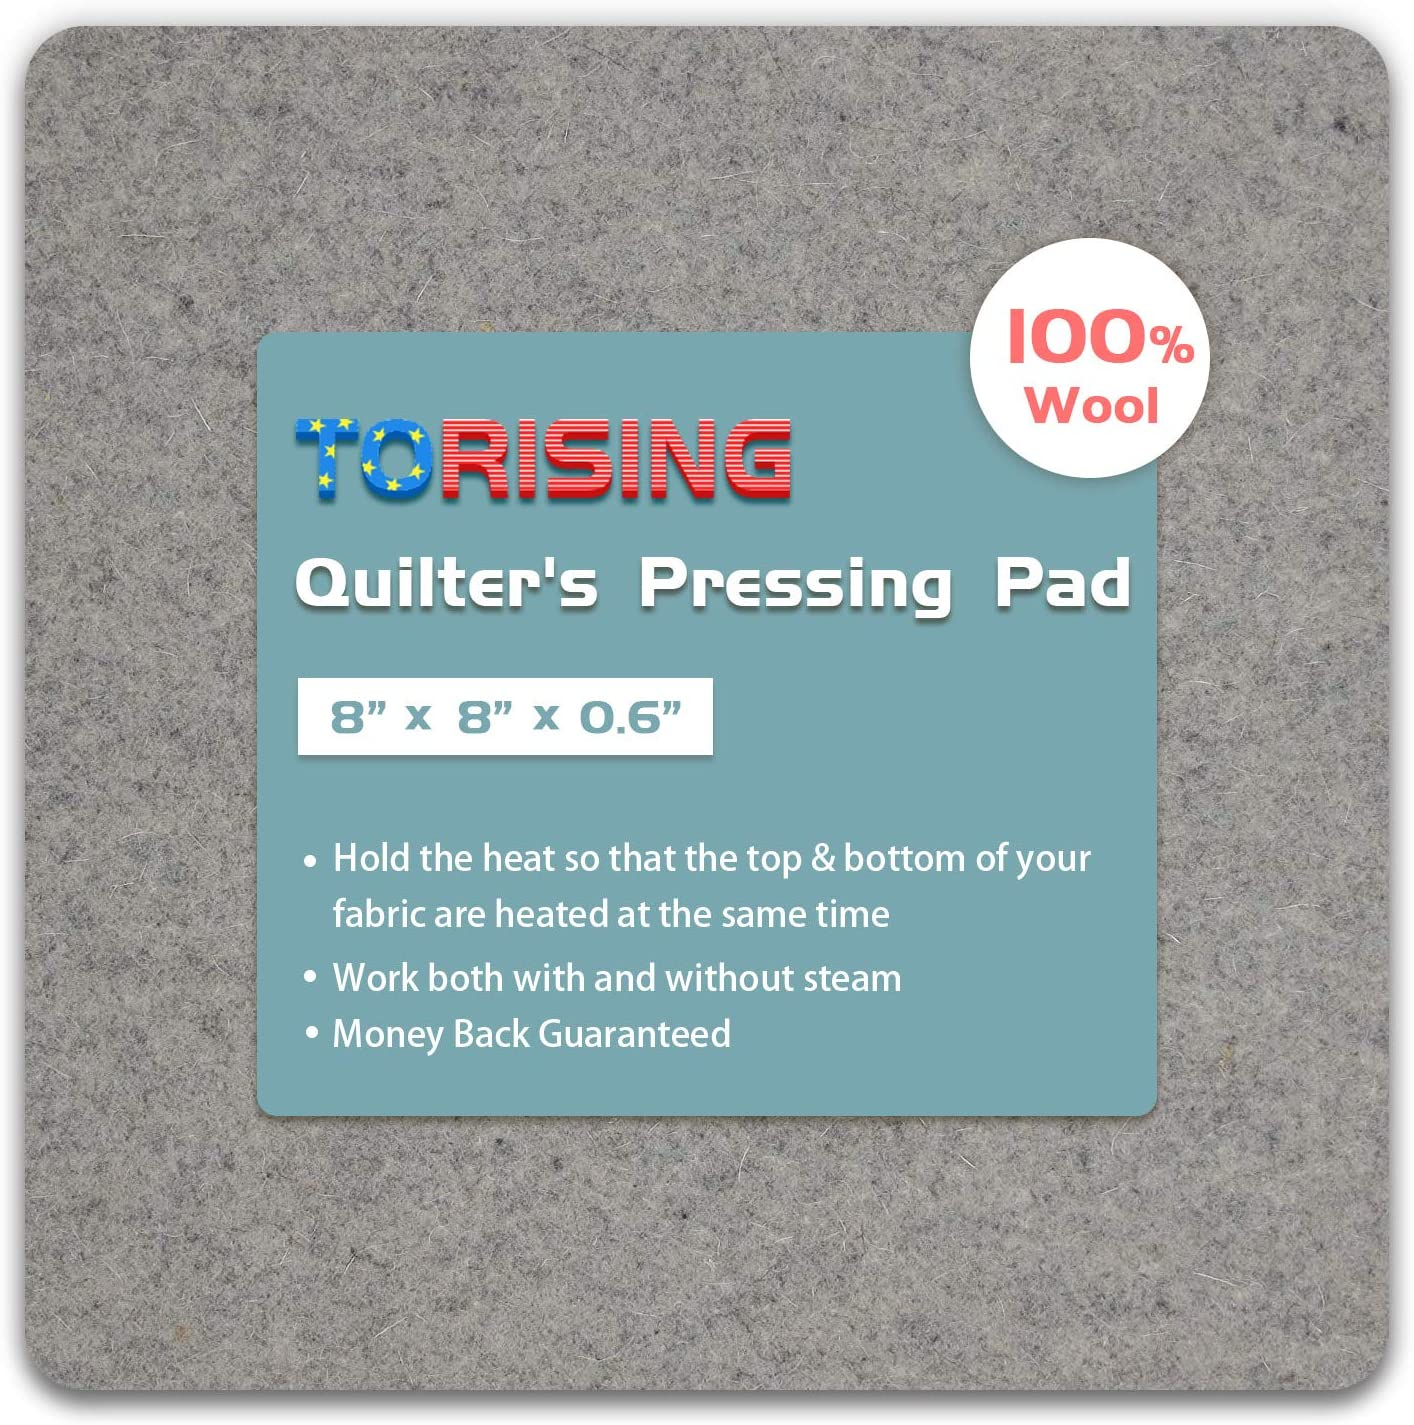 "Wool Pressing Mat for Quilting - 8""x8""x0.6"" 100% Wool Quilter's Pressing Ironing Pad"